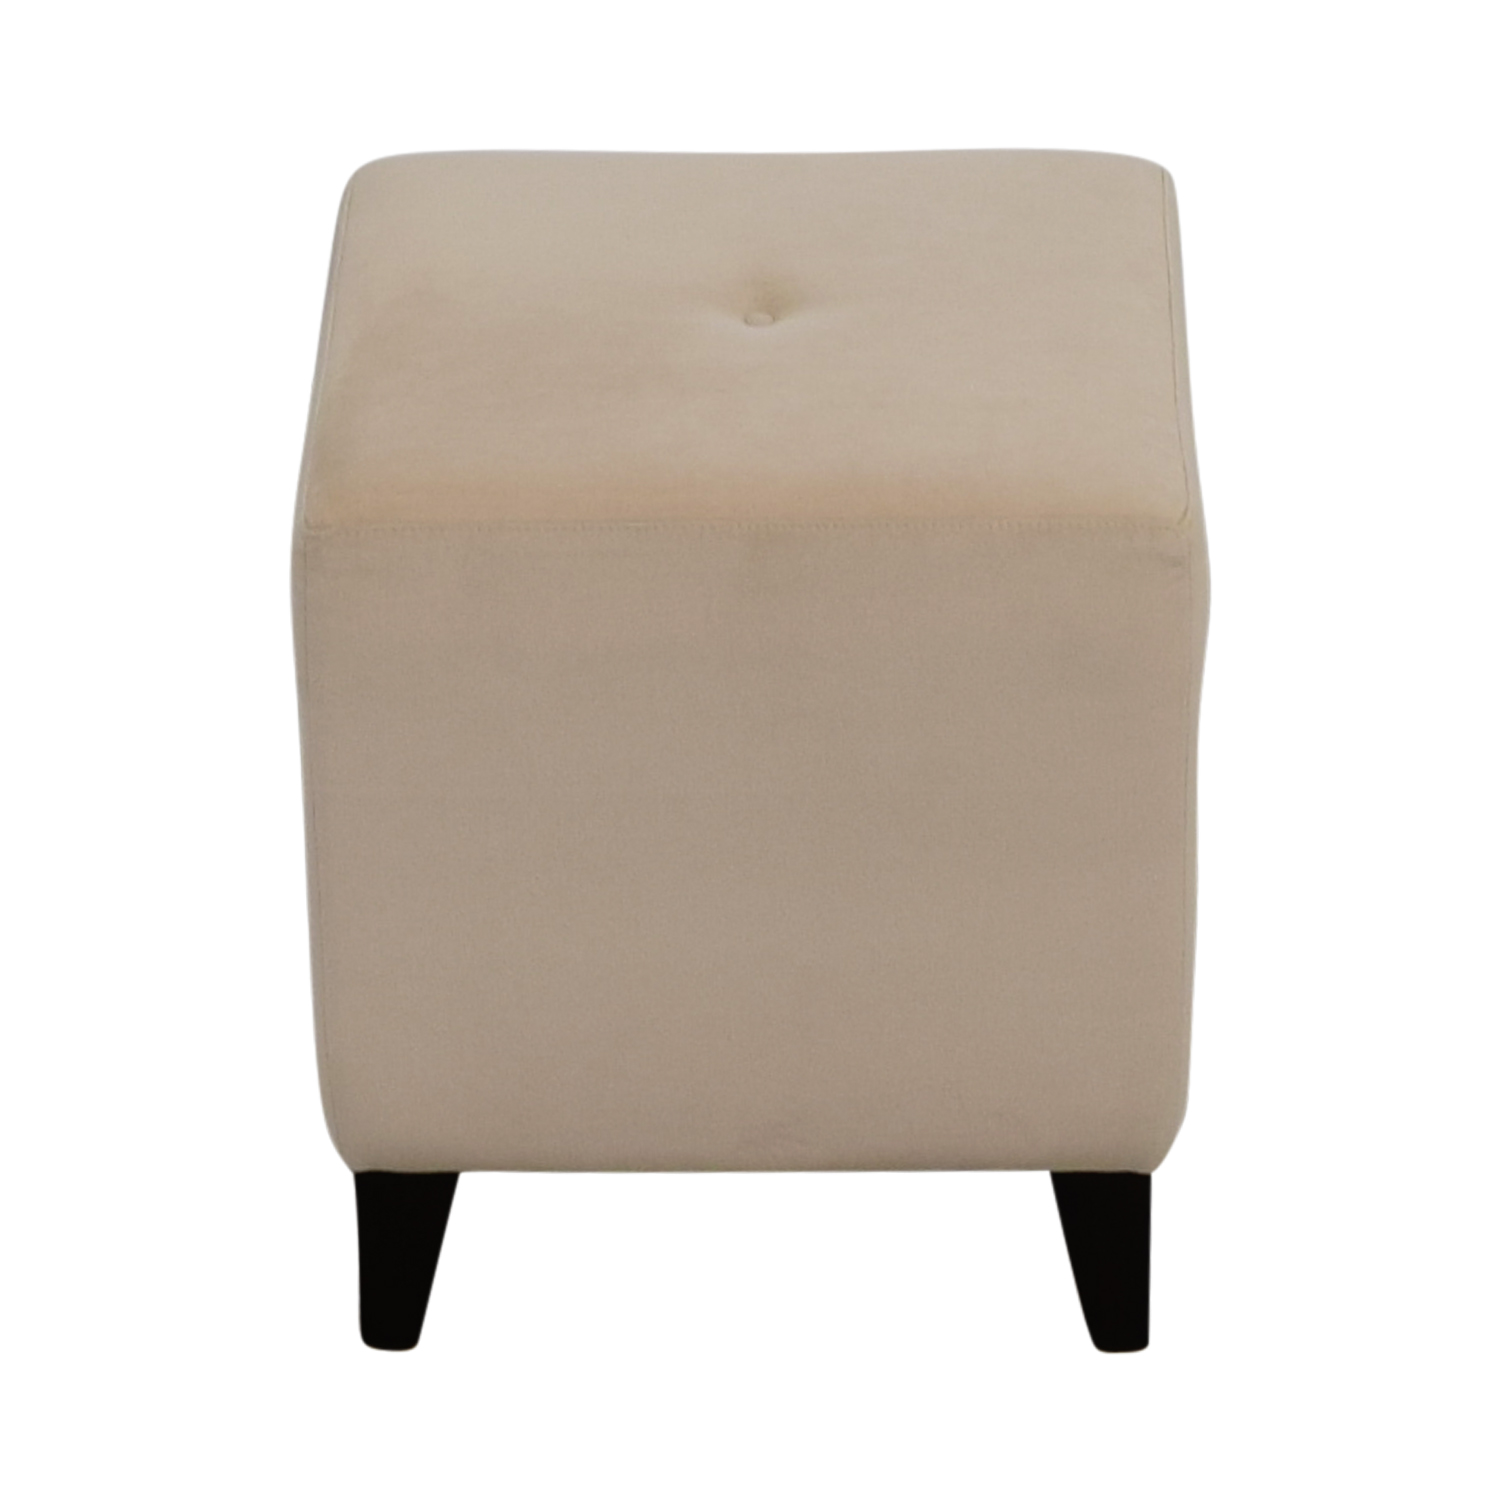 West Elm West Elm Tan Stool Stools